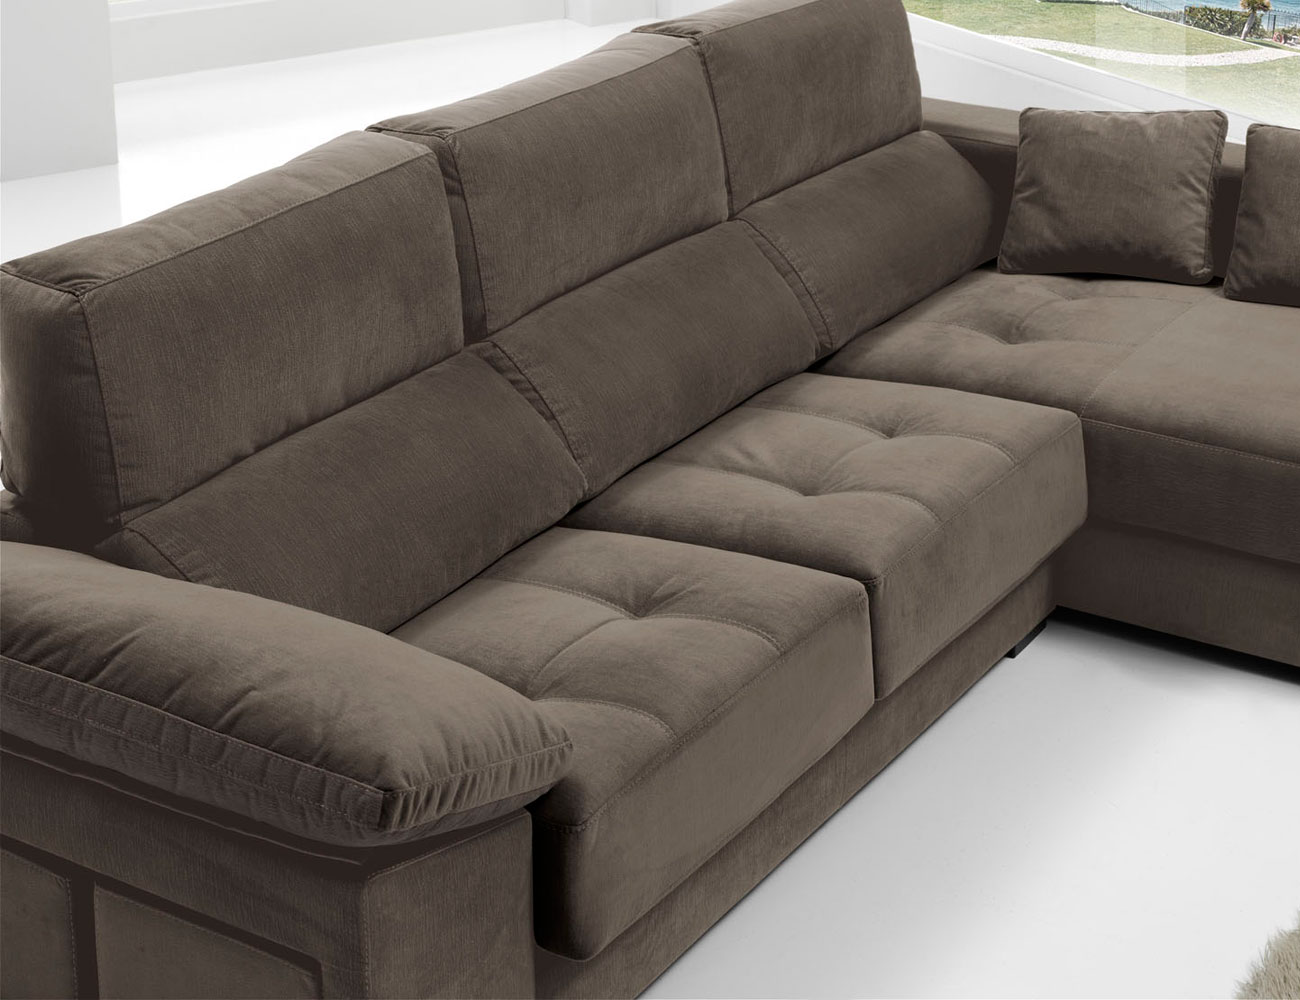 Sofa chaiselongue anti manchas bering pouf 224